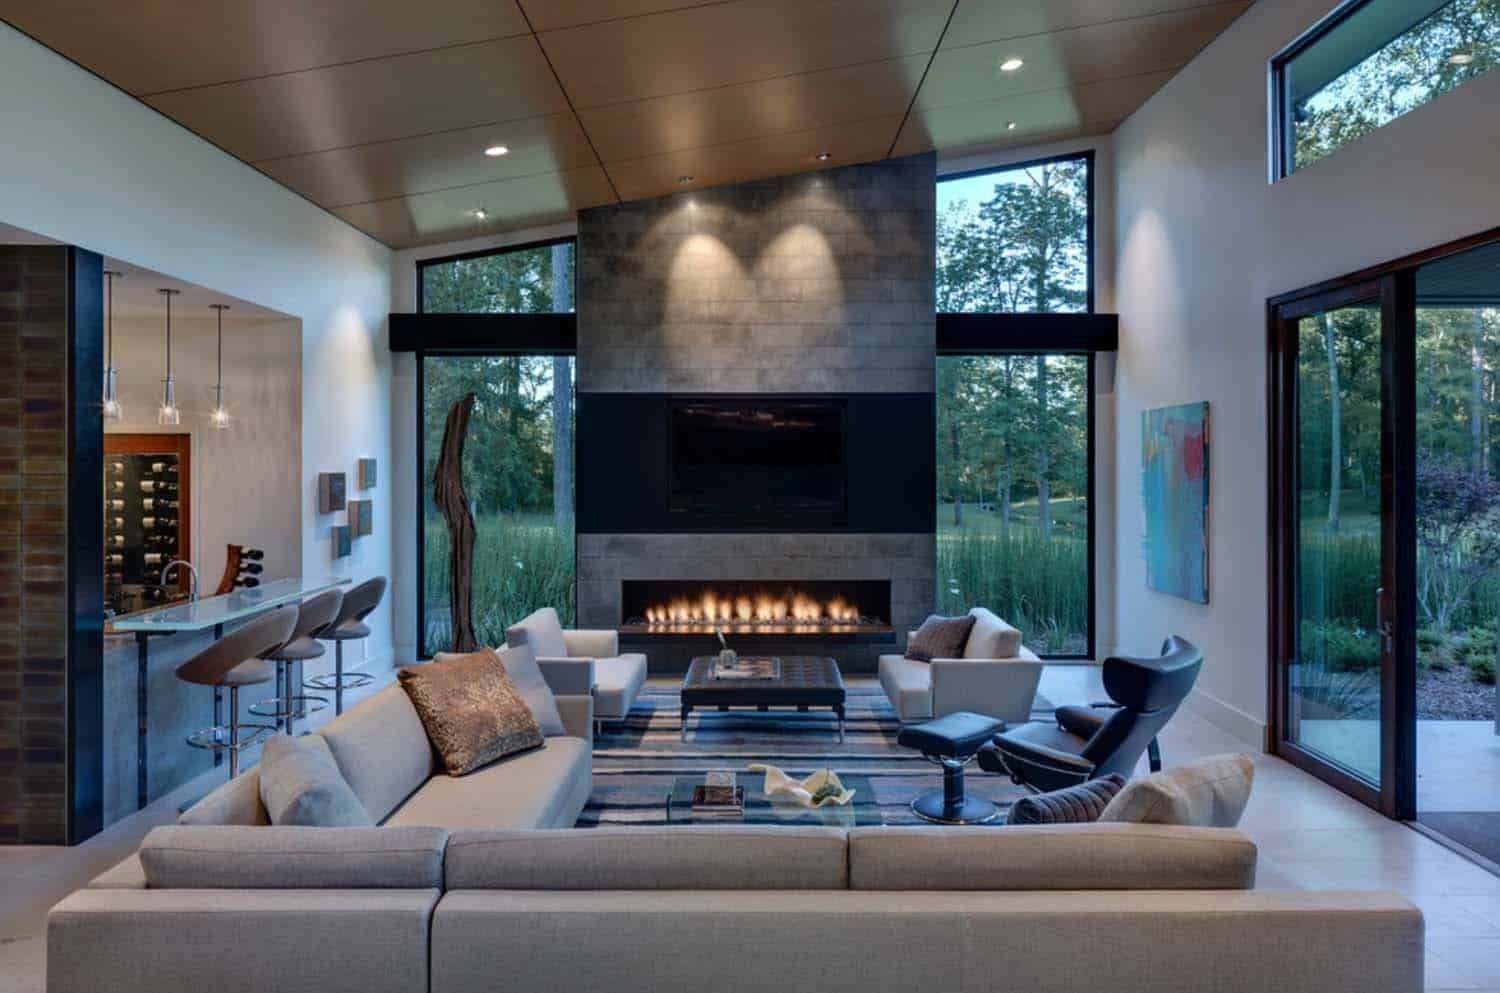 Luxurious Contemporary Estate-Linda Fritschy Interior Design-06-1 Kindesign